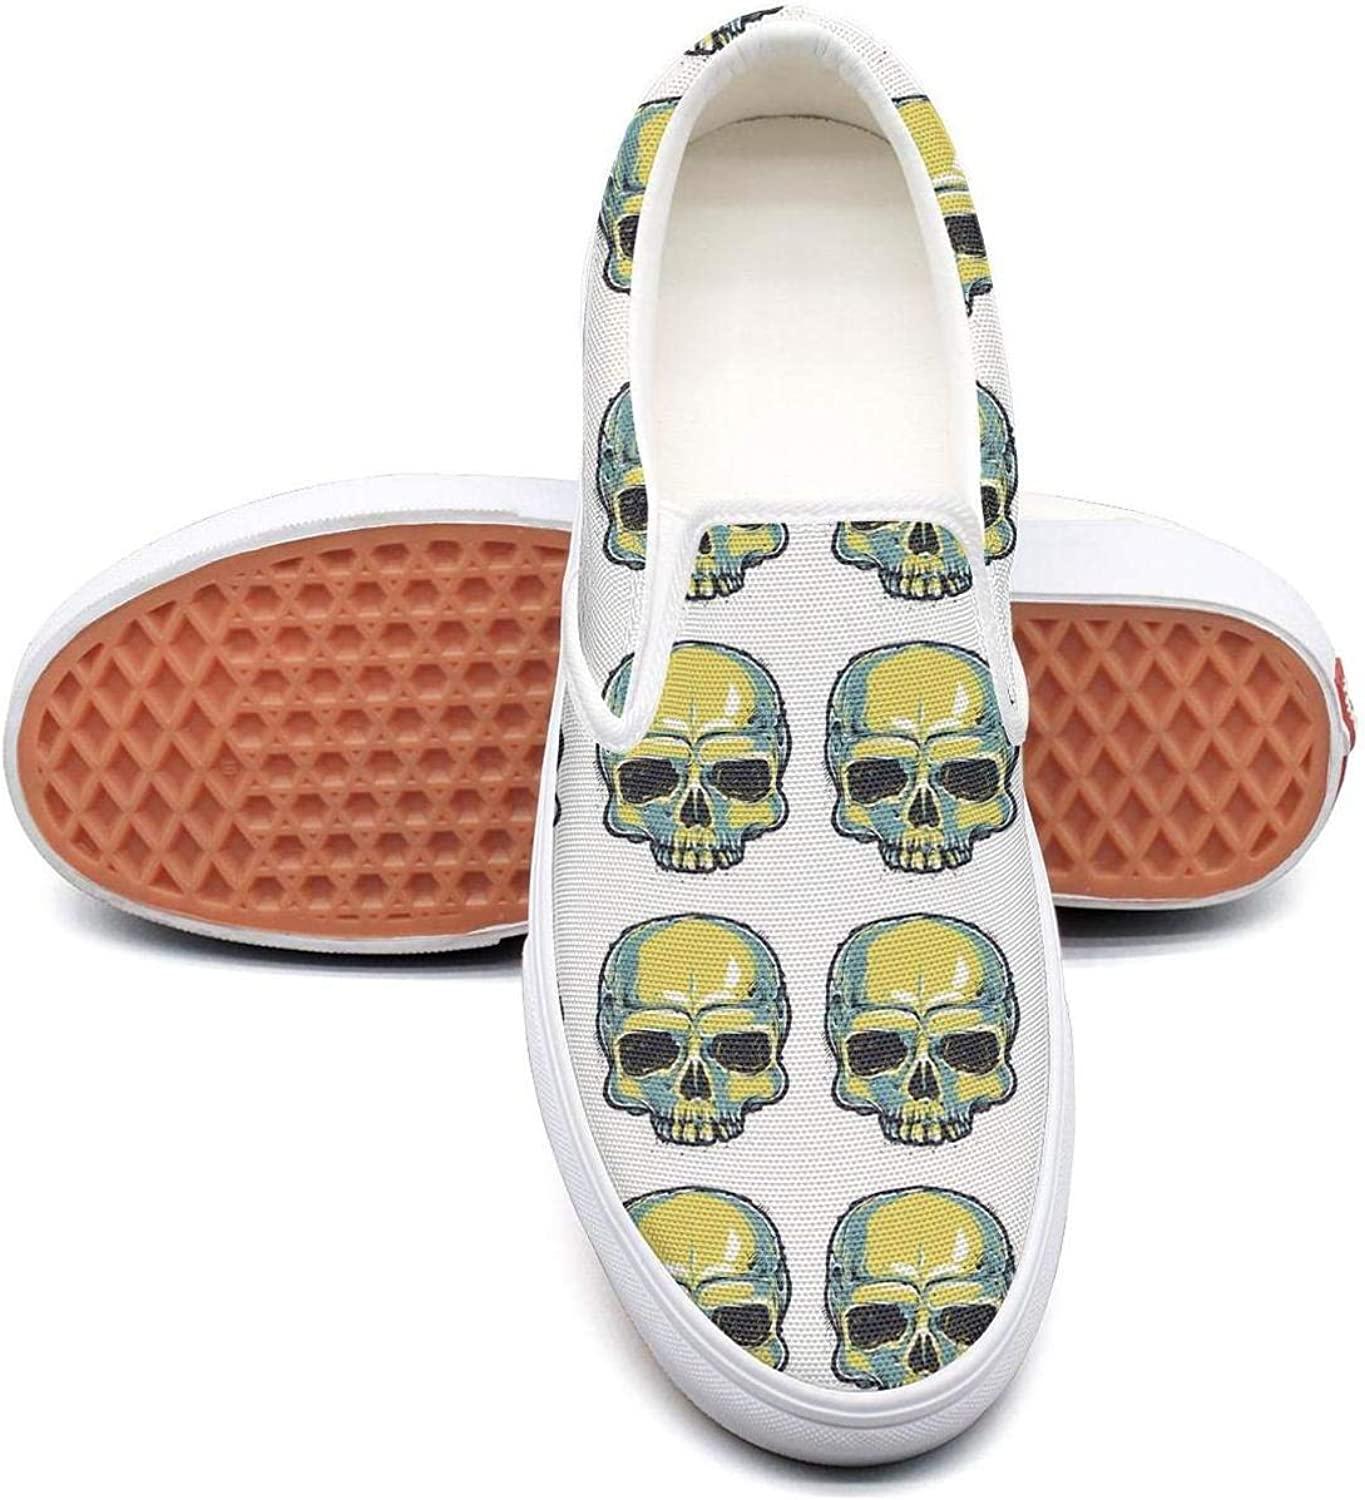 Skull Skull Want U Slip On Canvas Upper Sneakers Canvas shoes for Women Fashion